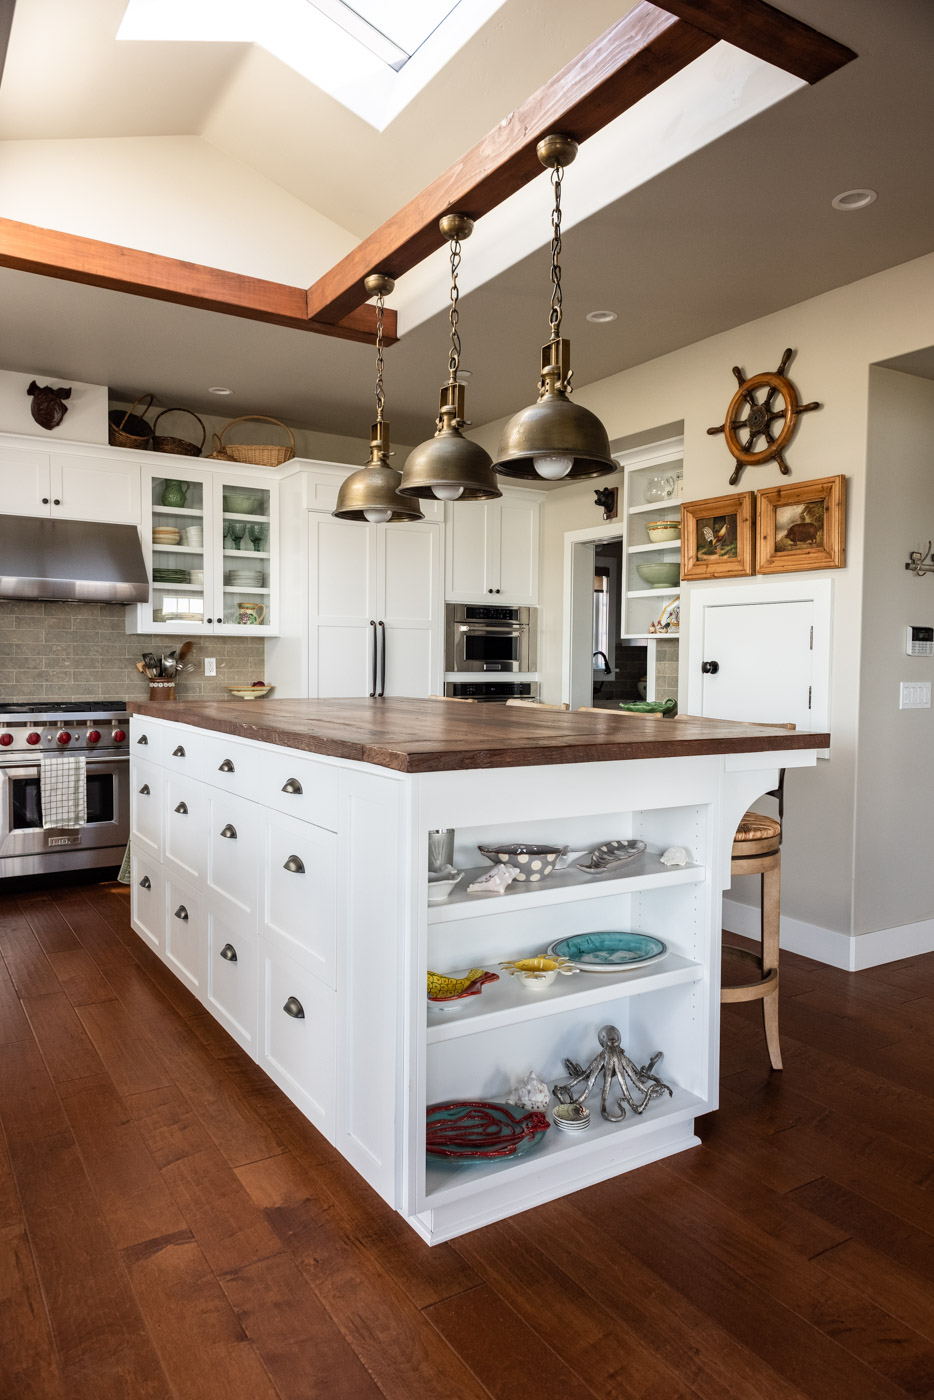 Coastal Craftsman kitchen with custom white painted shaker cabinets and island storage